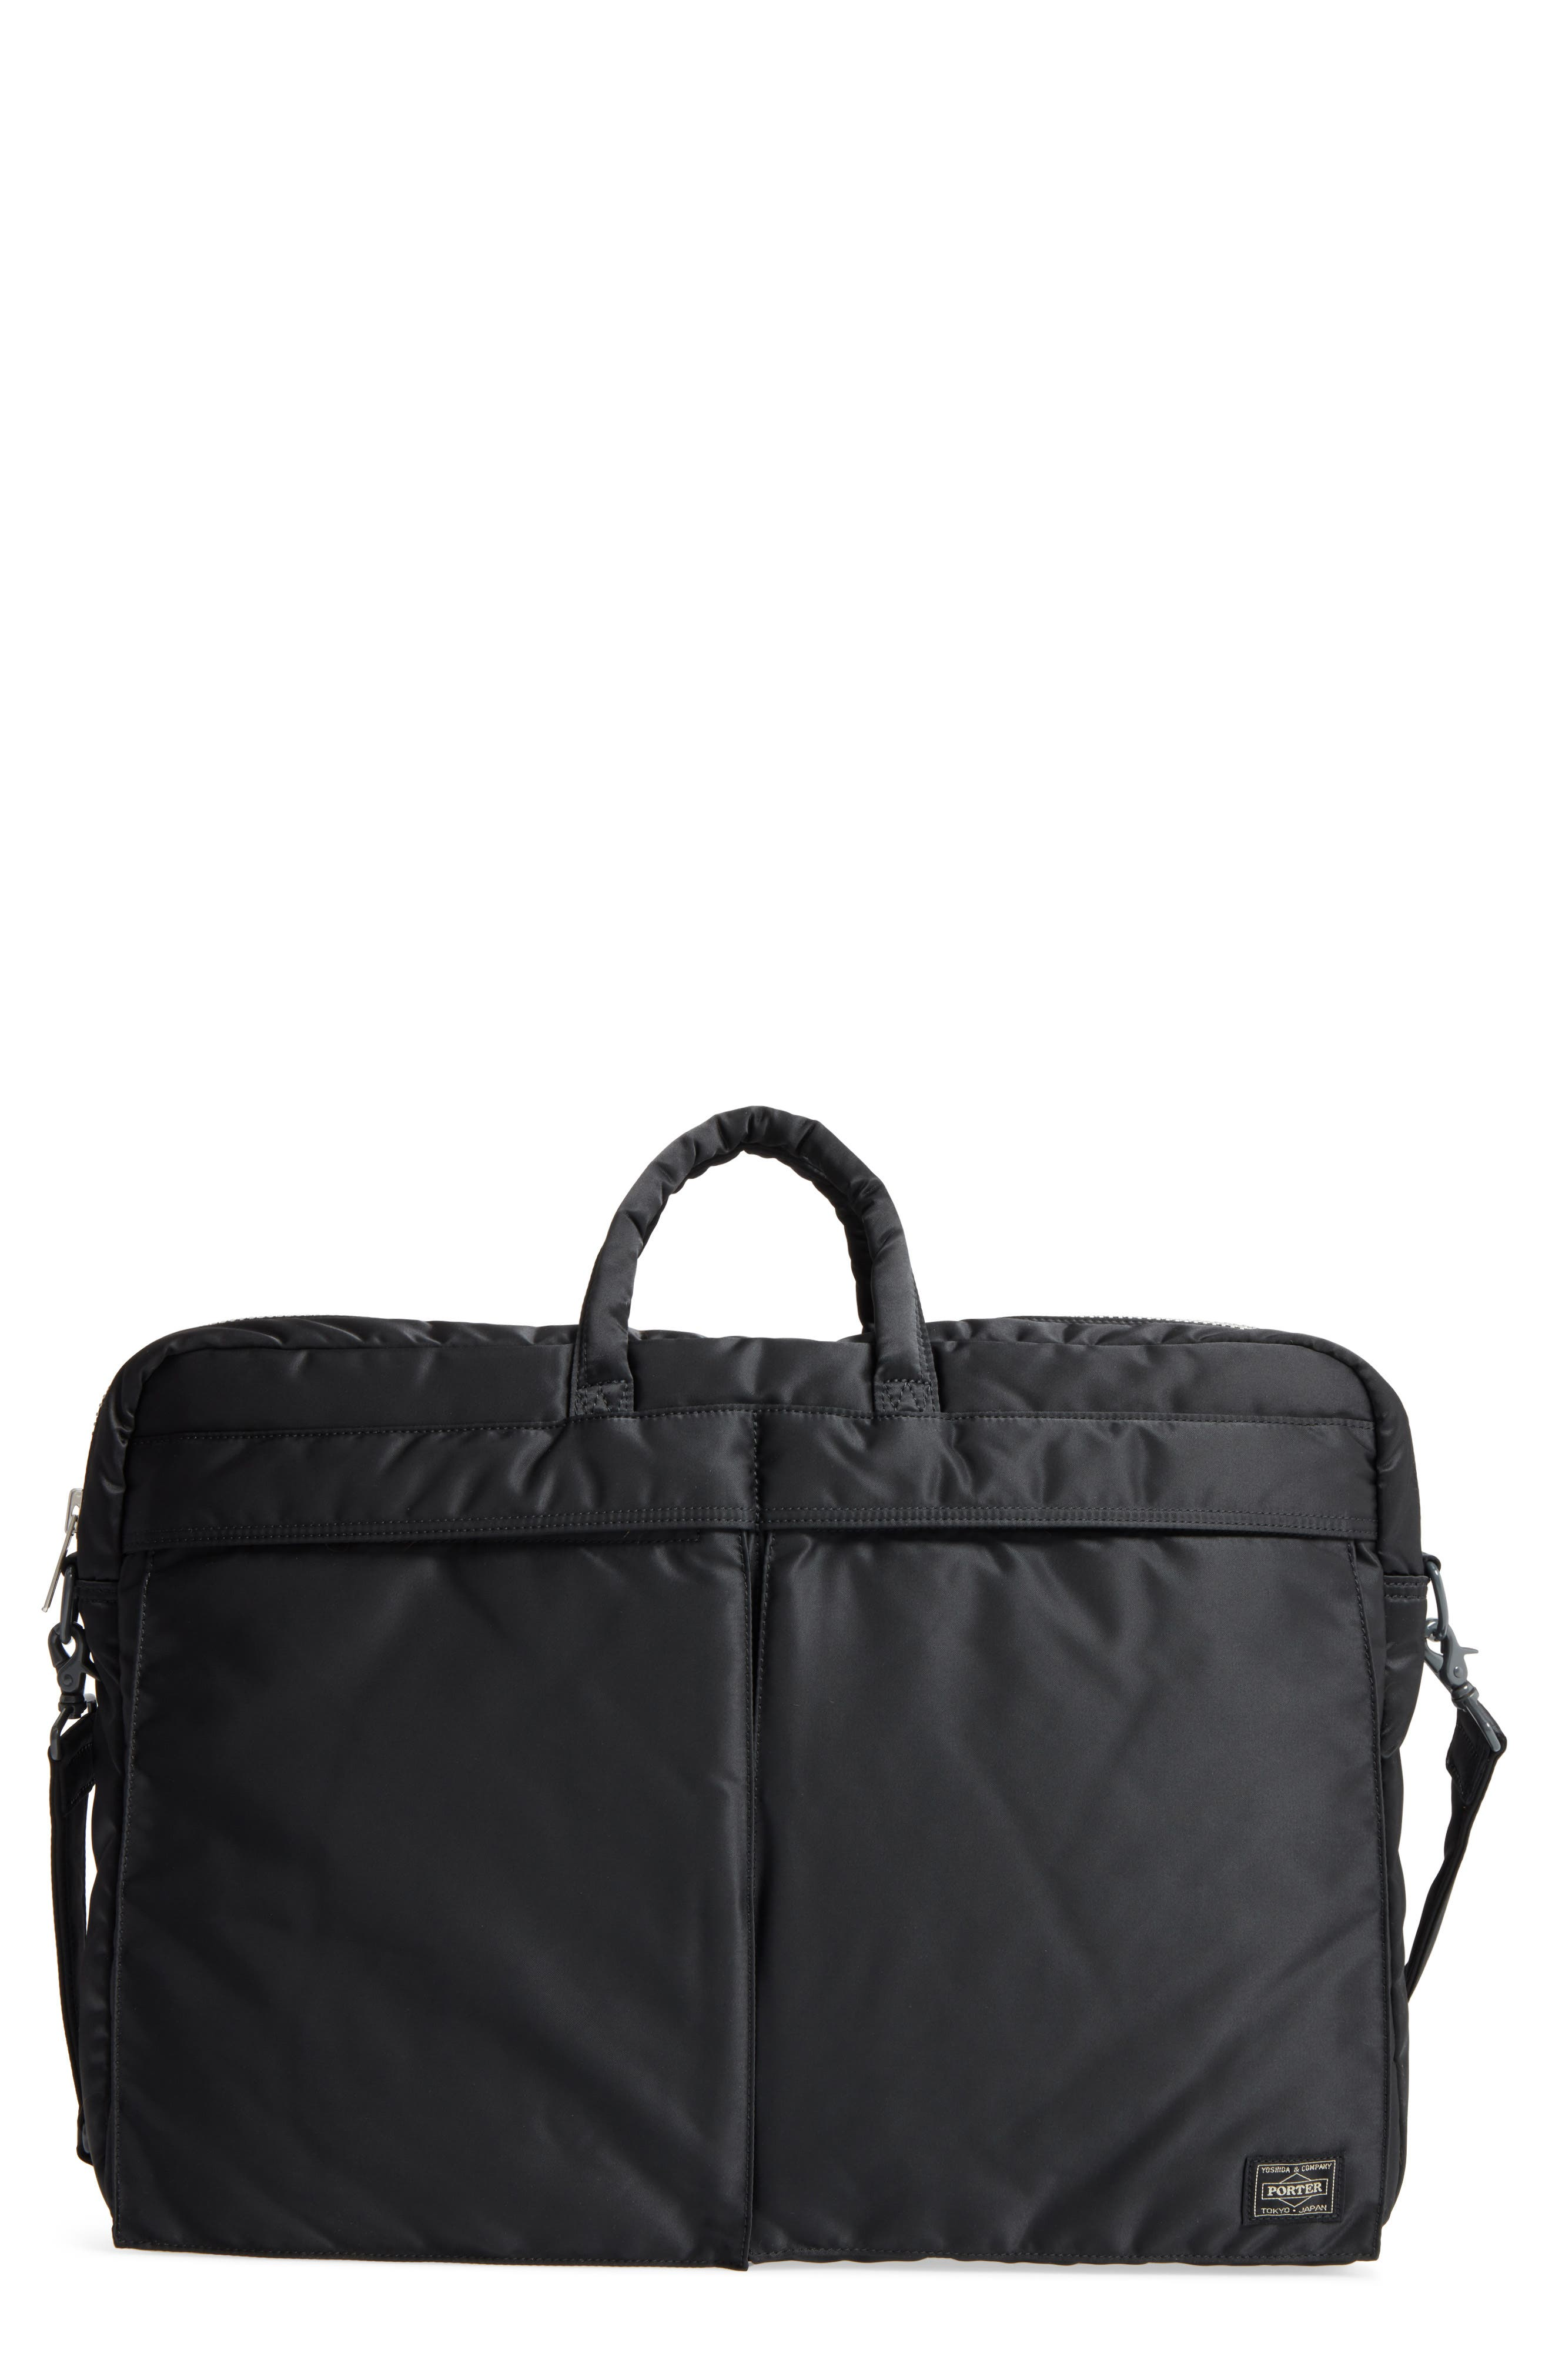 Porter-Yoshida & Co. Tanker Two-Way Briefcase,                             Main thumbnail 1, color,                             Black